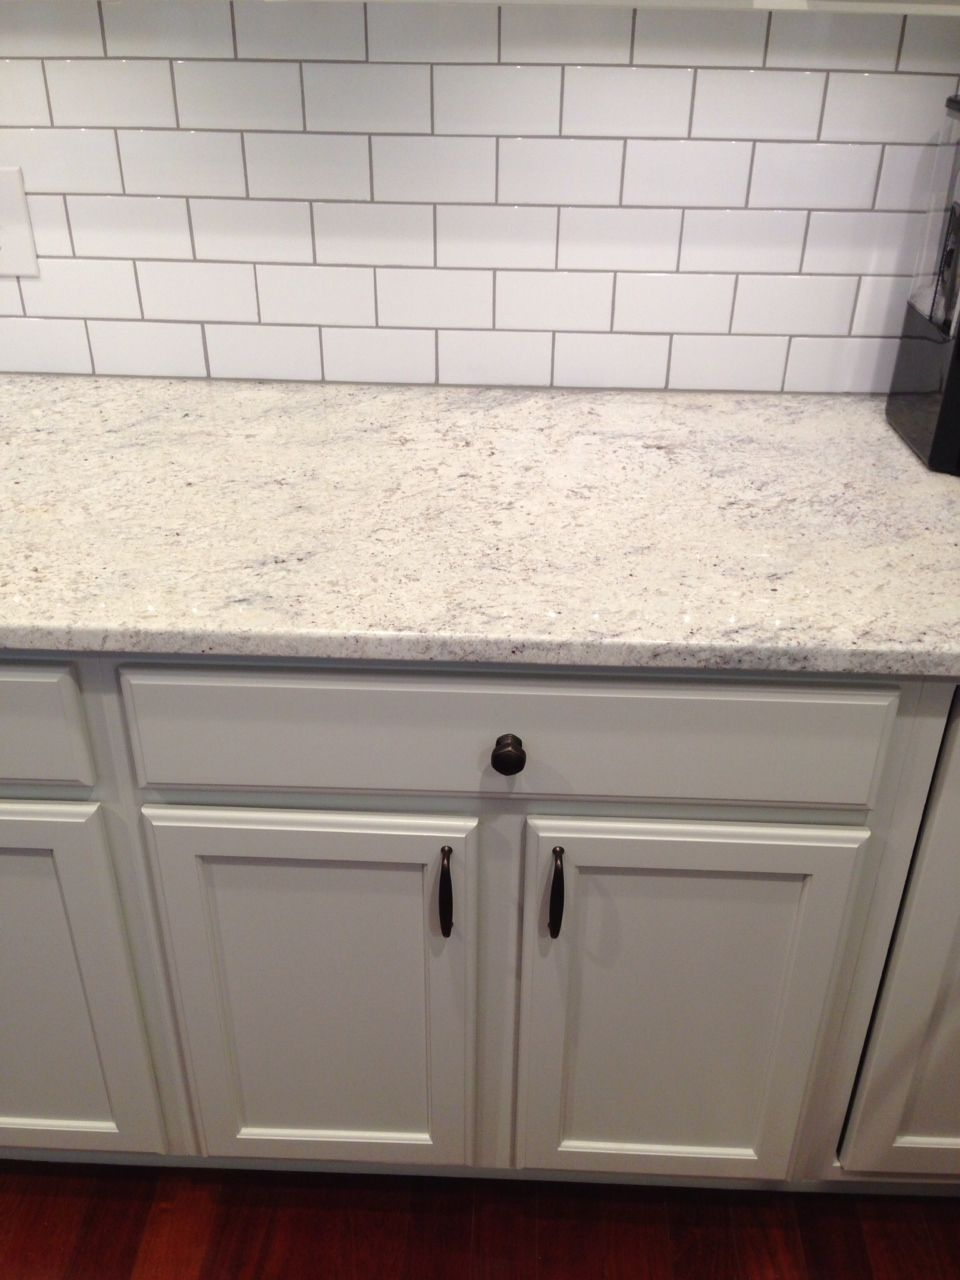 Garden Web Kitchens Quartzite Countertop White Macauba Kitchens Forum Gardenweb